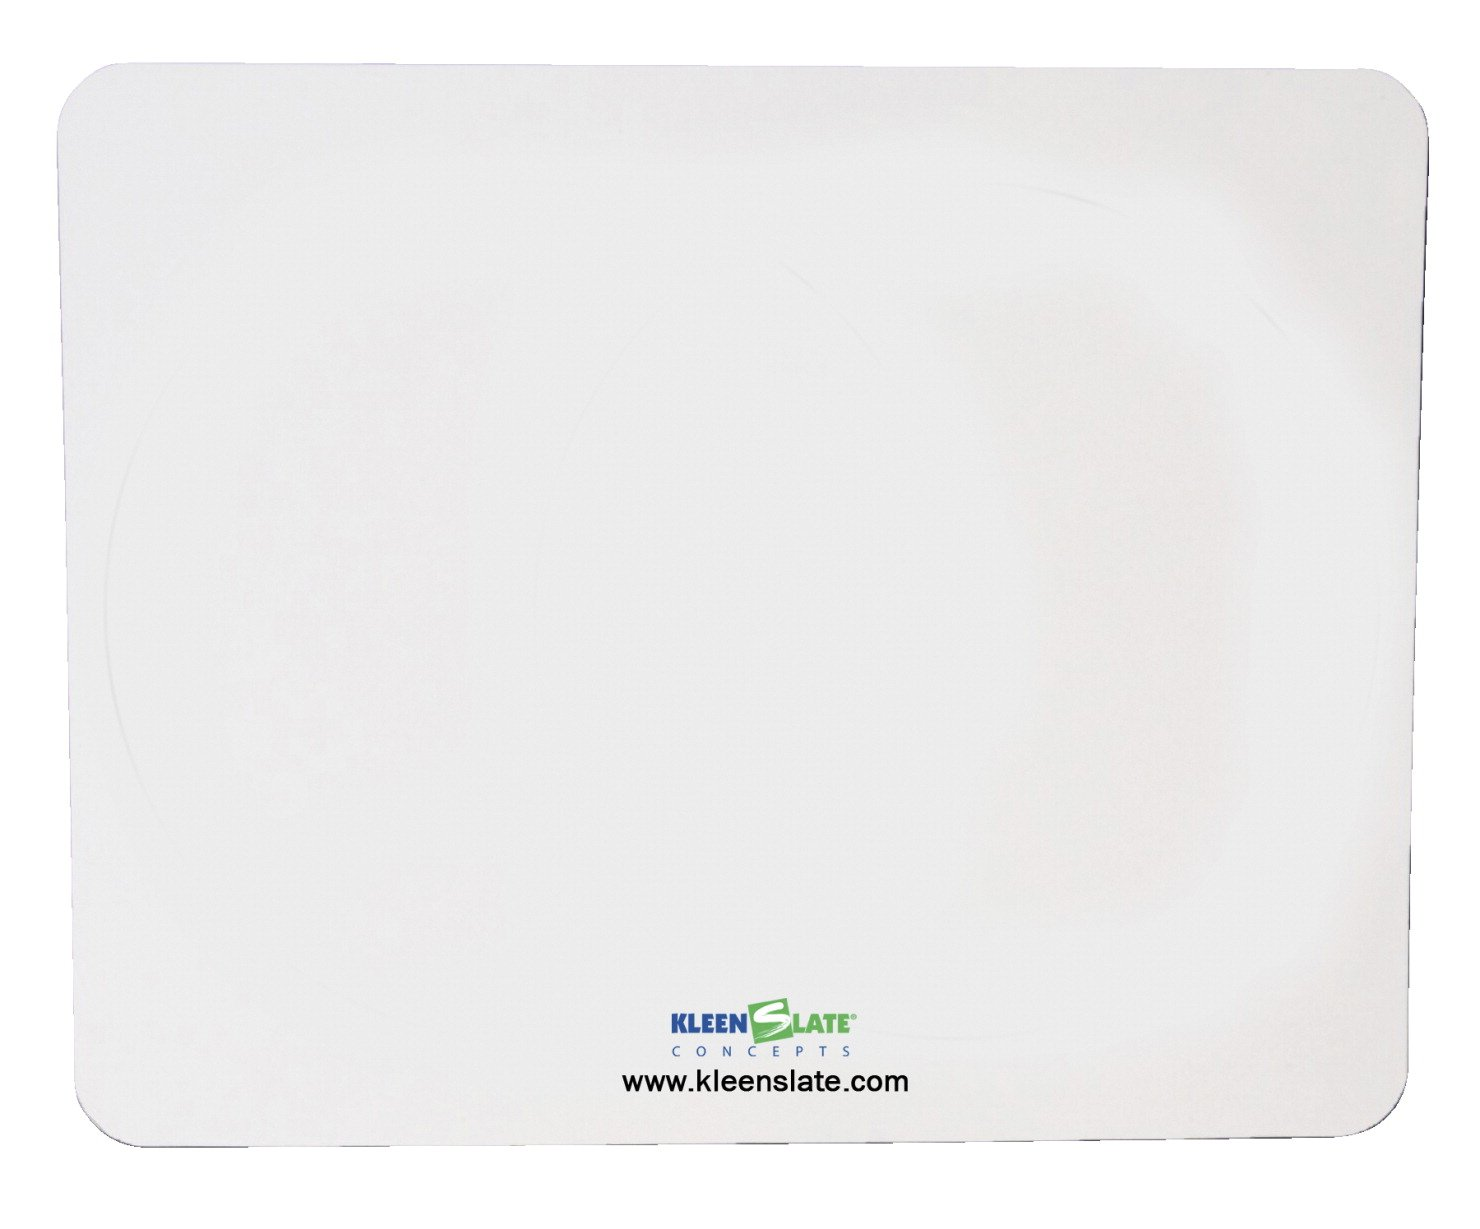 Kleenslate 1438931 Blank Dry Erase Paddle Replacement Sheet, Rectangular, 8'' x 10'' Size